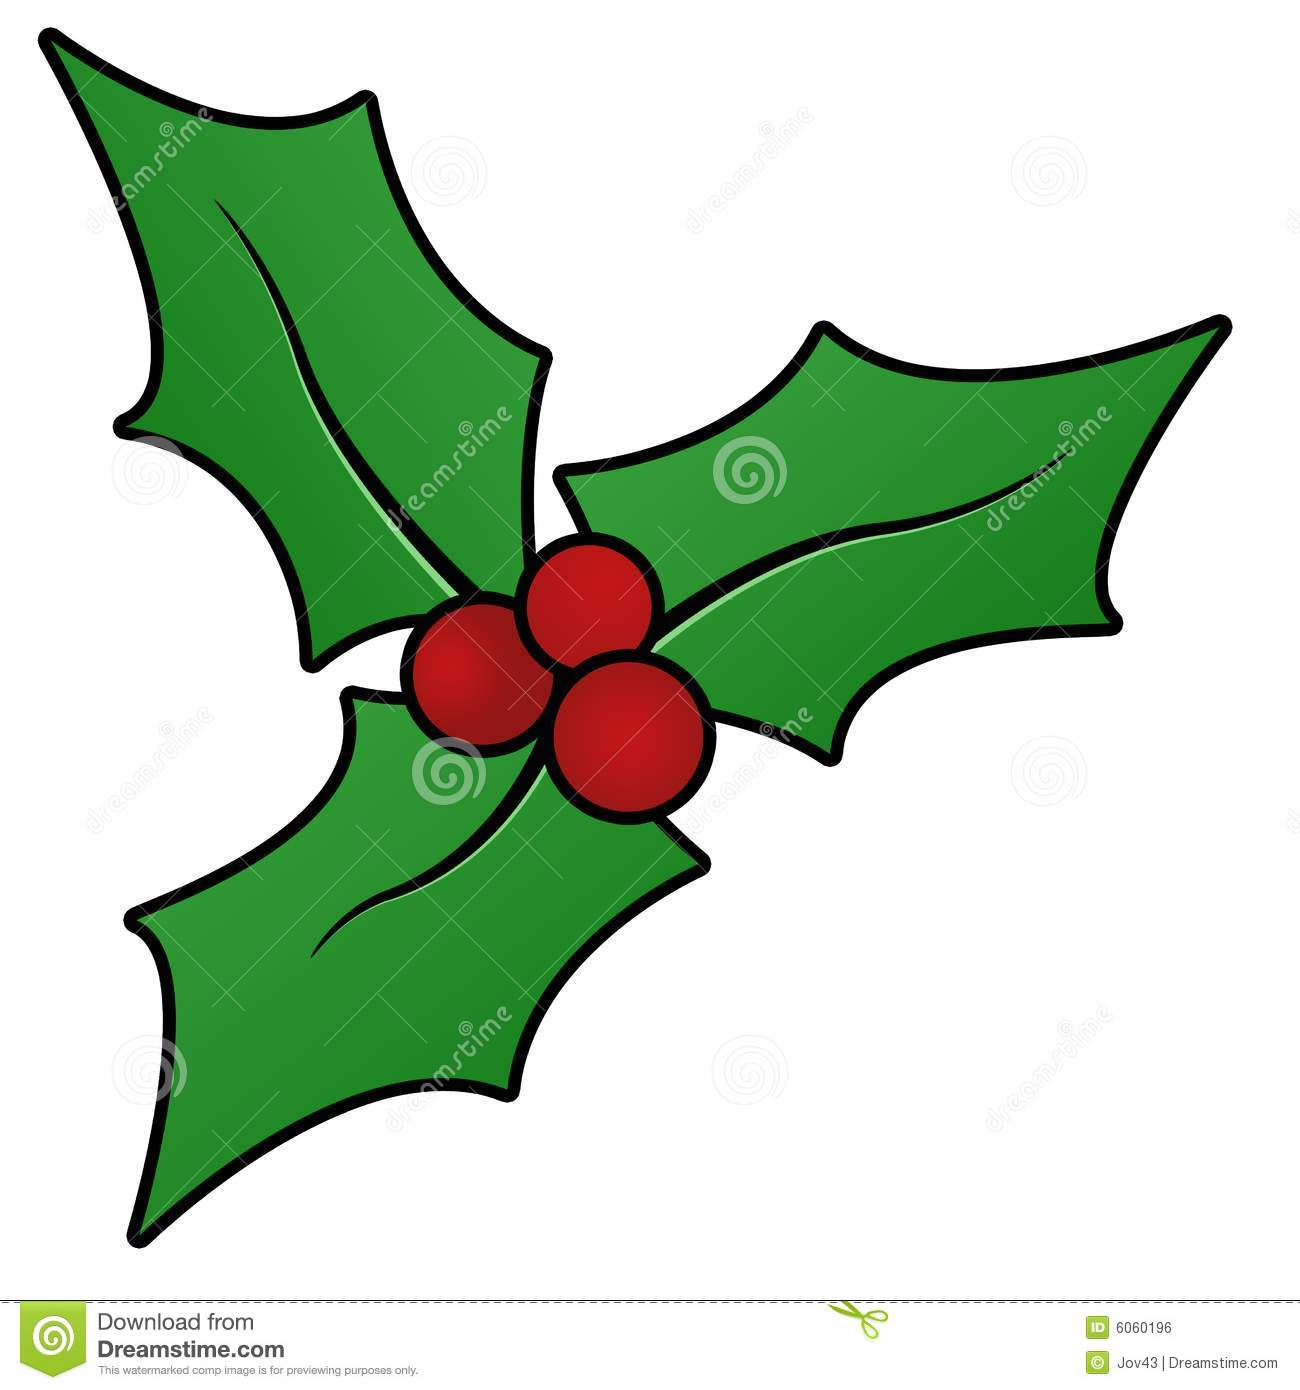 Christmas holly sprig stock illustration. Illustration of graphic.